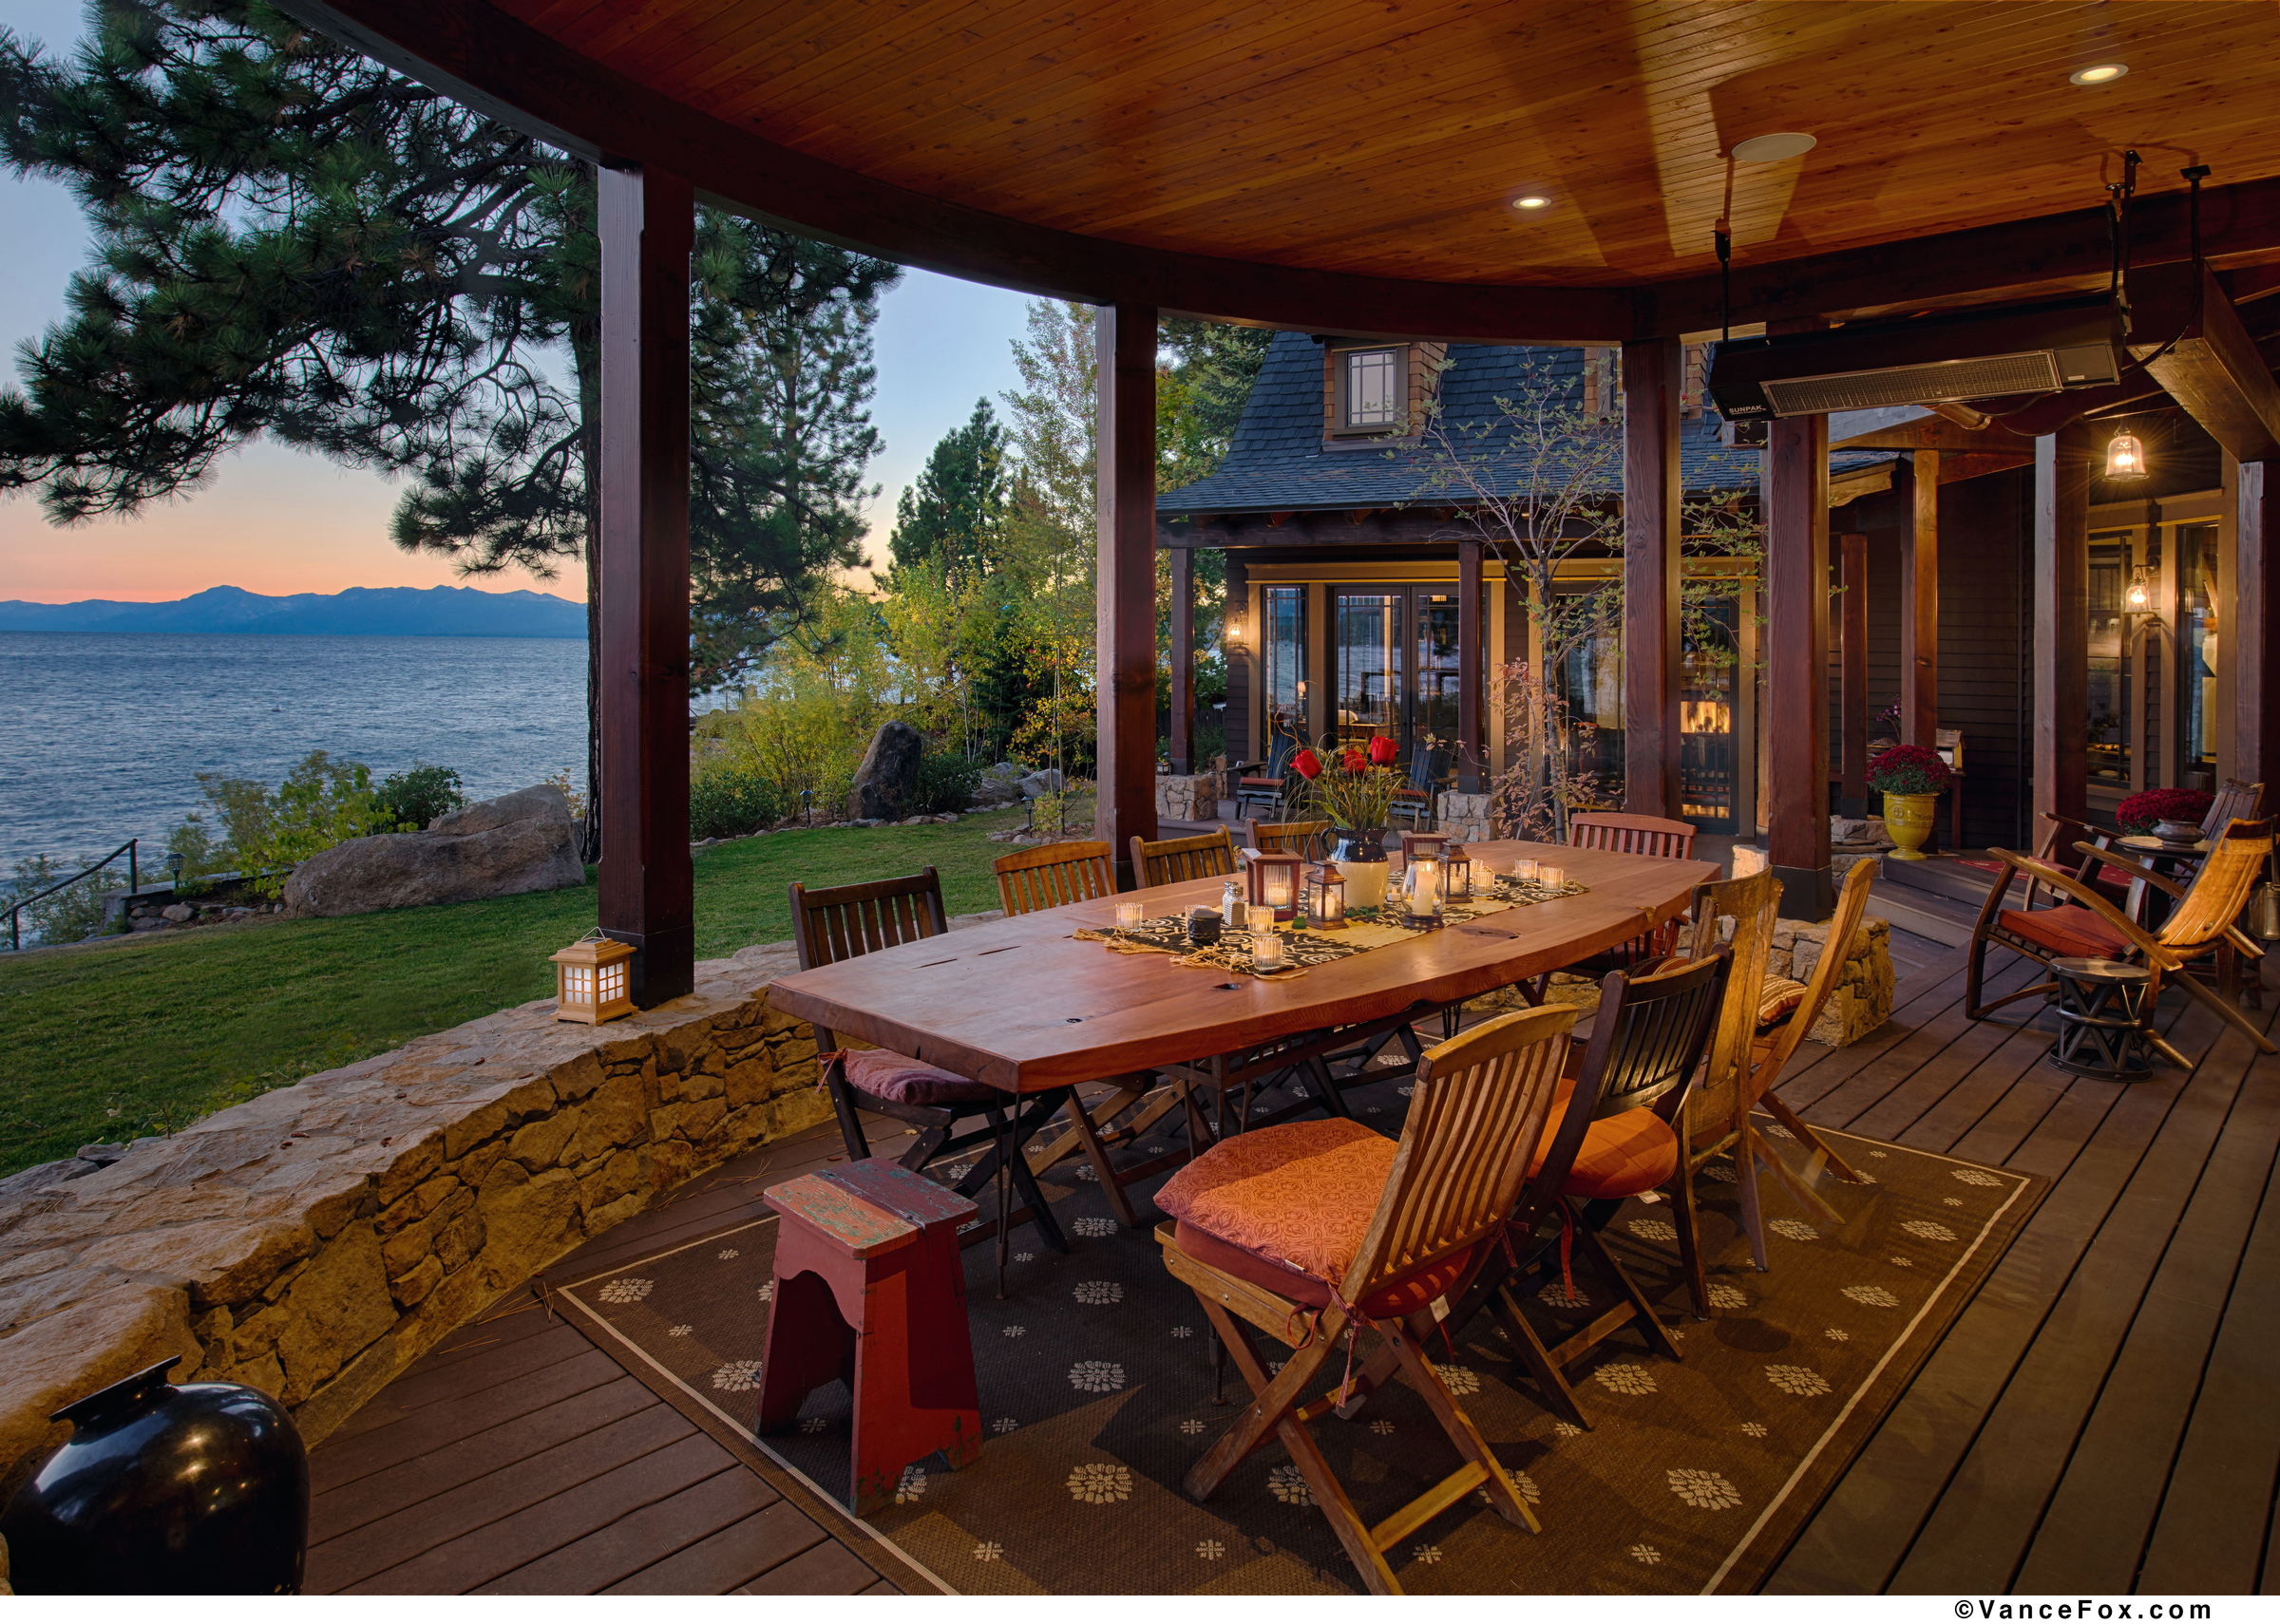 tahoe details at south cabin silverwood cfm lake photo cabins for lakefront classic property rental vacation rentals this